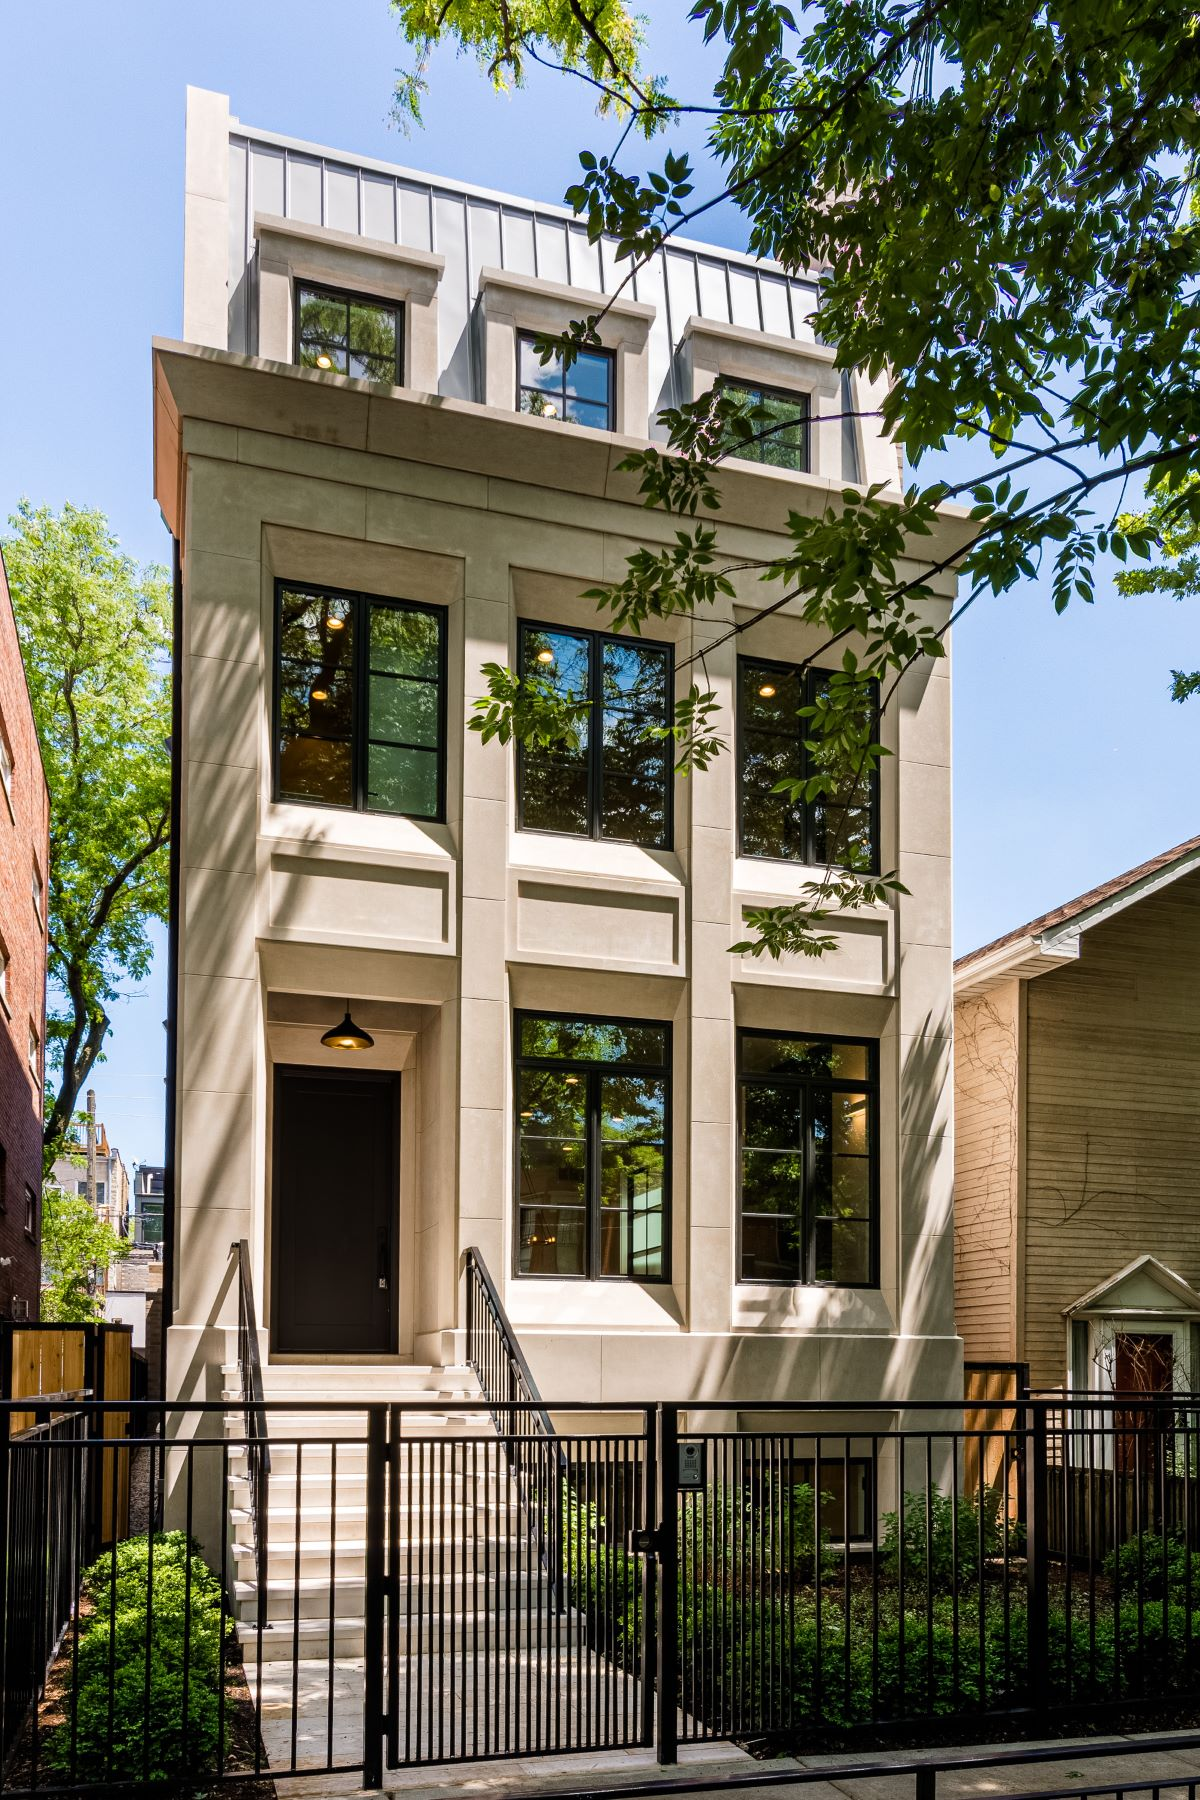 Property for Sale at Exceptional new Construction Home 1909 N Dayton Street Chicago, Illinois 60614 United States